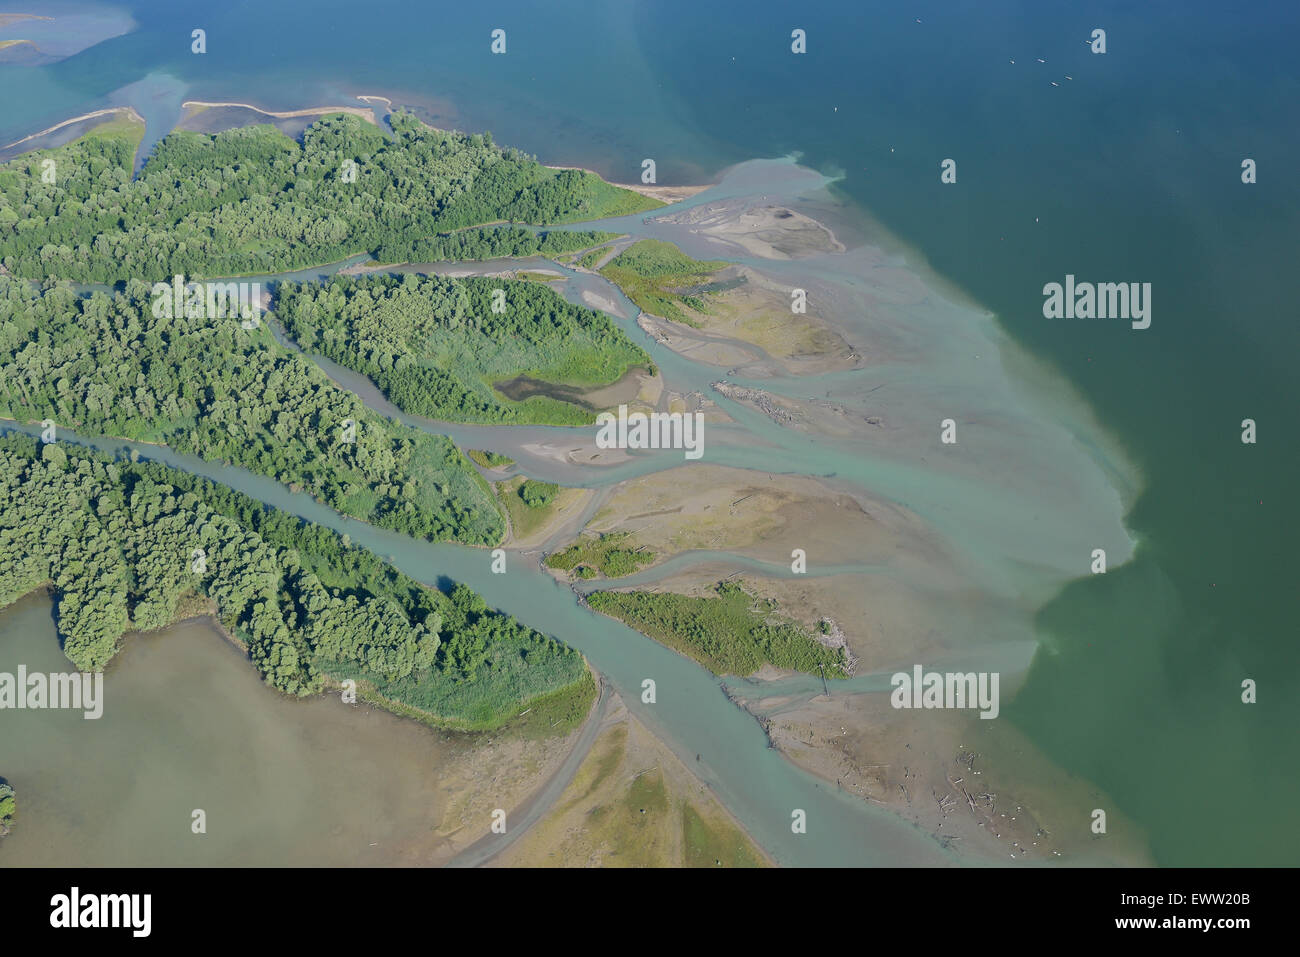 DELTA (aerial view). Tiroler Achen (Großache) river inlet into Lake Chiemsee, Bavaria, Germany. - Stock Image